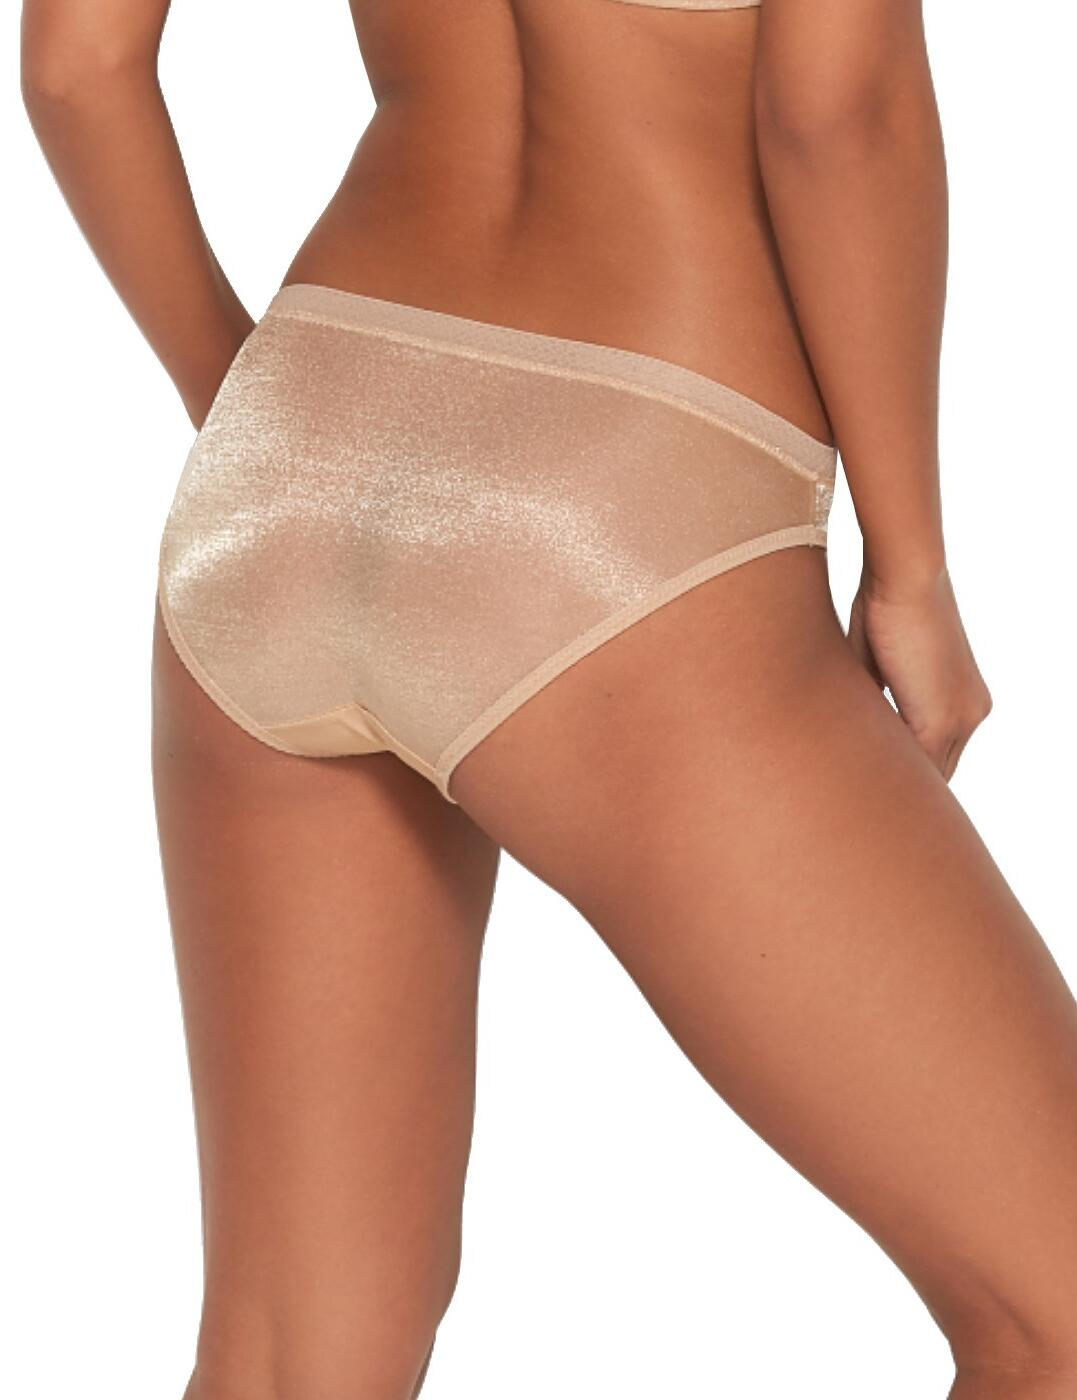 Gossard Glossies Brief 6273 Womens Sheer Knickers New Lingerie